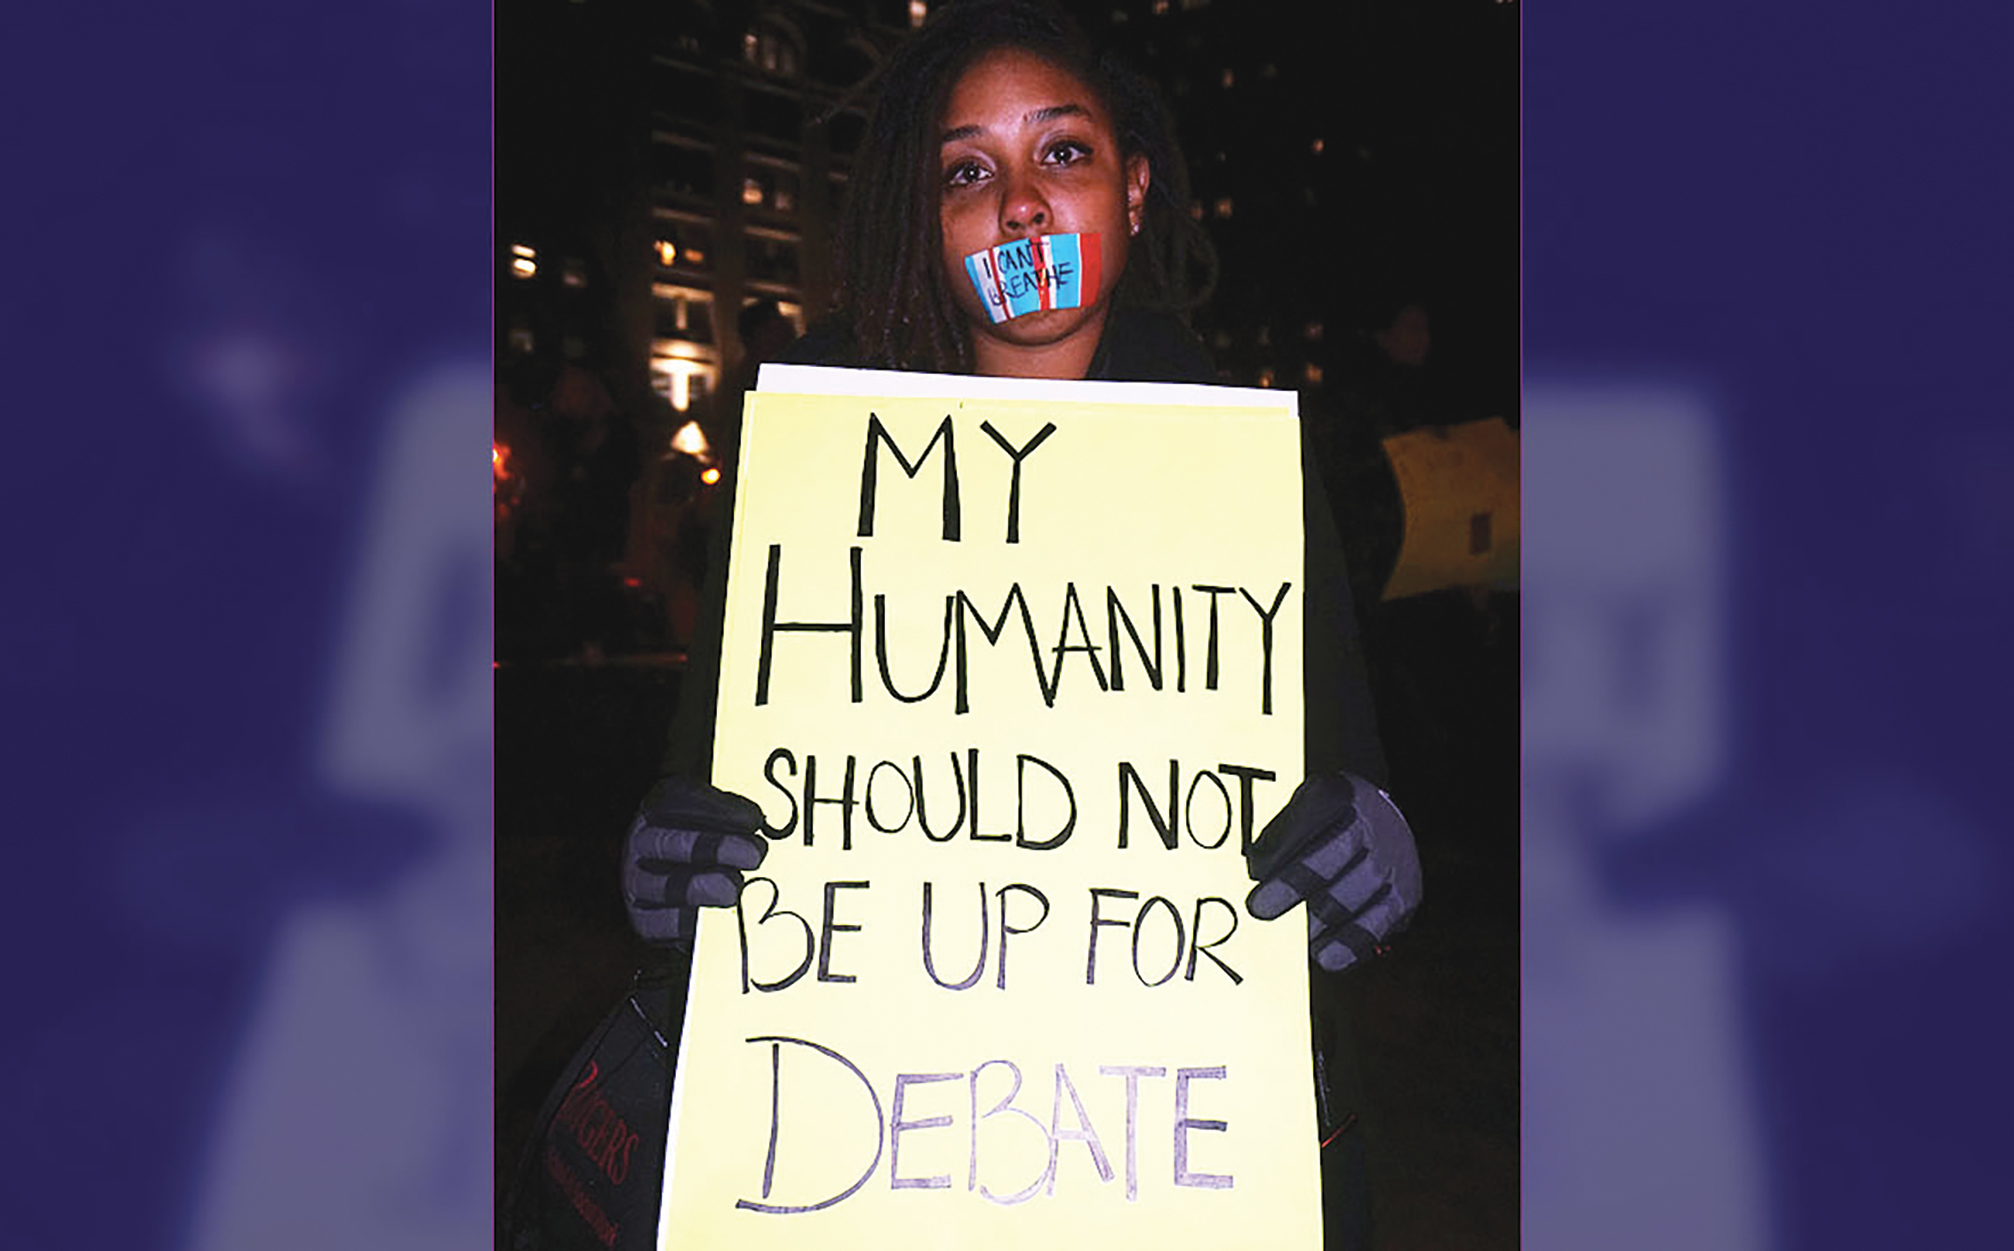 """The video of Garner begging for his life and repeating the words """"I can't breathe"""" eleven times, catapulted the case into the national spotlight and made it an often-mentioned example of police brutality. (Photo: Eric Garner Protest 4th December 2014, Manhattan, NYC. This image was originally posted to Flickr by The All-Nite Images at https://flickr.com/photos/7278633@N04/15327384664. It was reviewed on 6 November 2015 by FlickreviewR and was confirmed to be licensed under the terms of the cc-by-sa-2.0.)"""